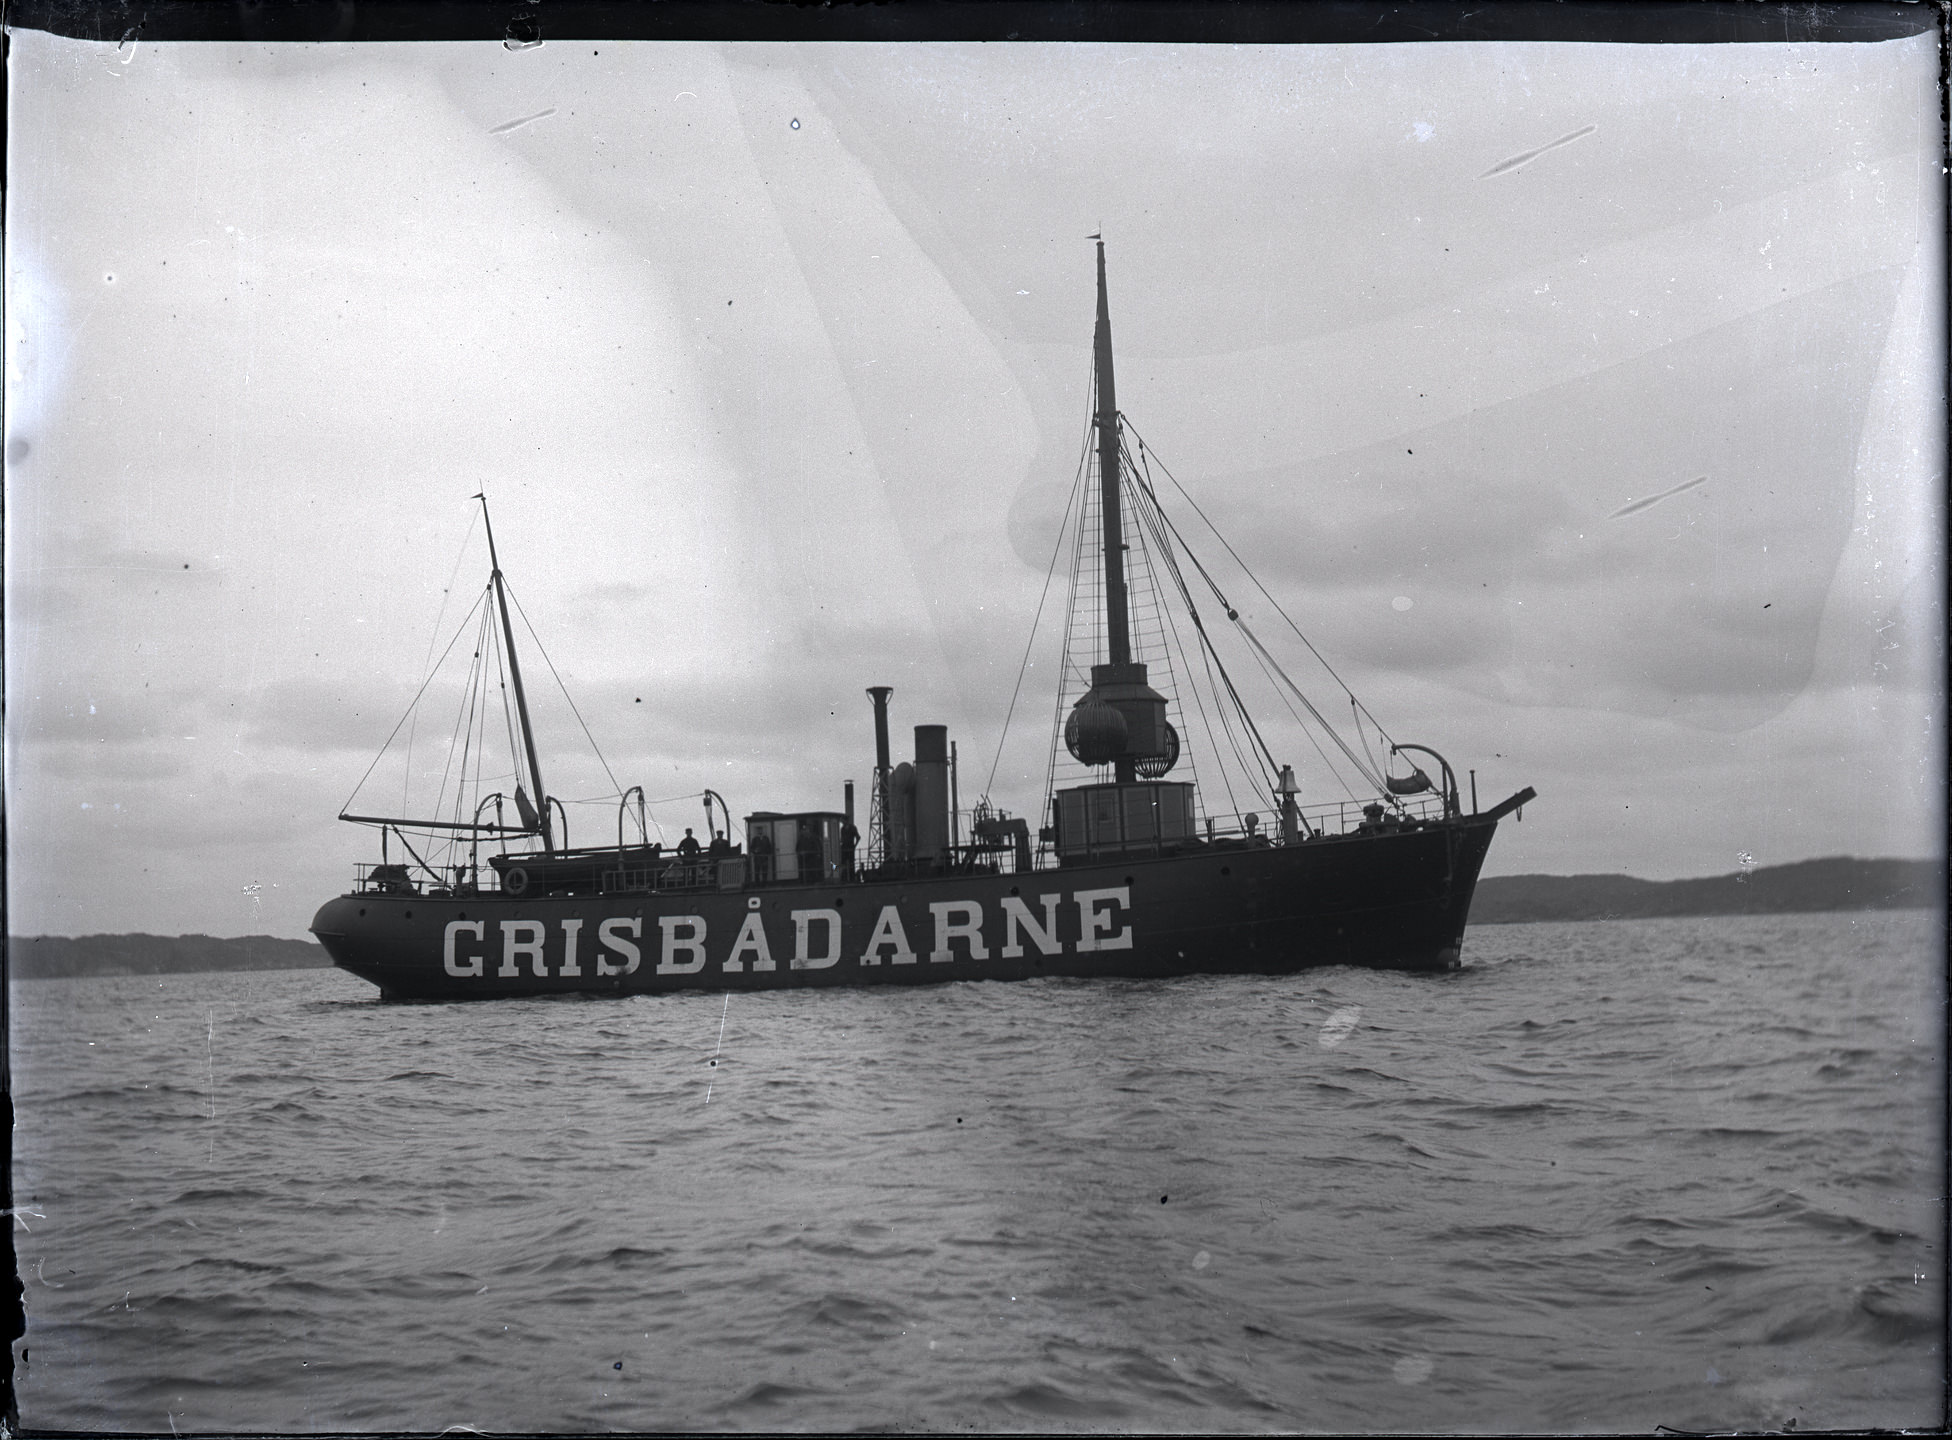 Grisbådarne Stained.jpg